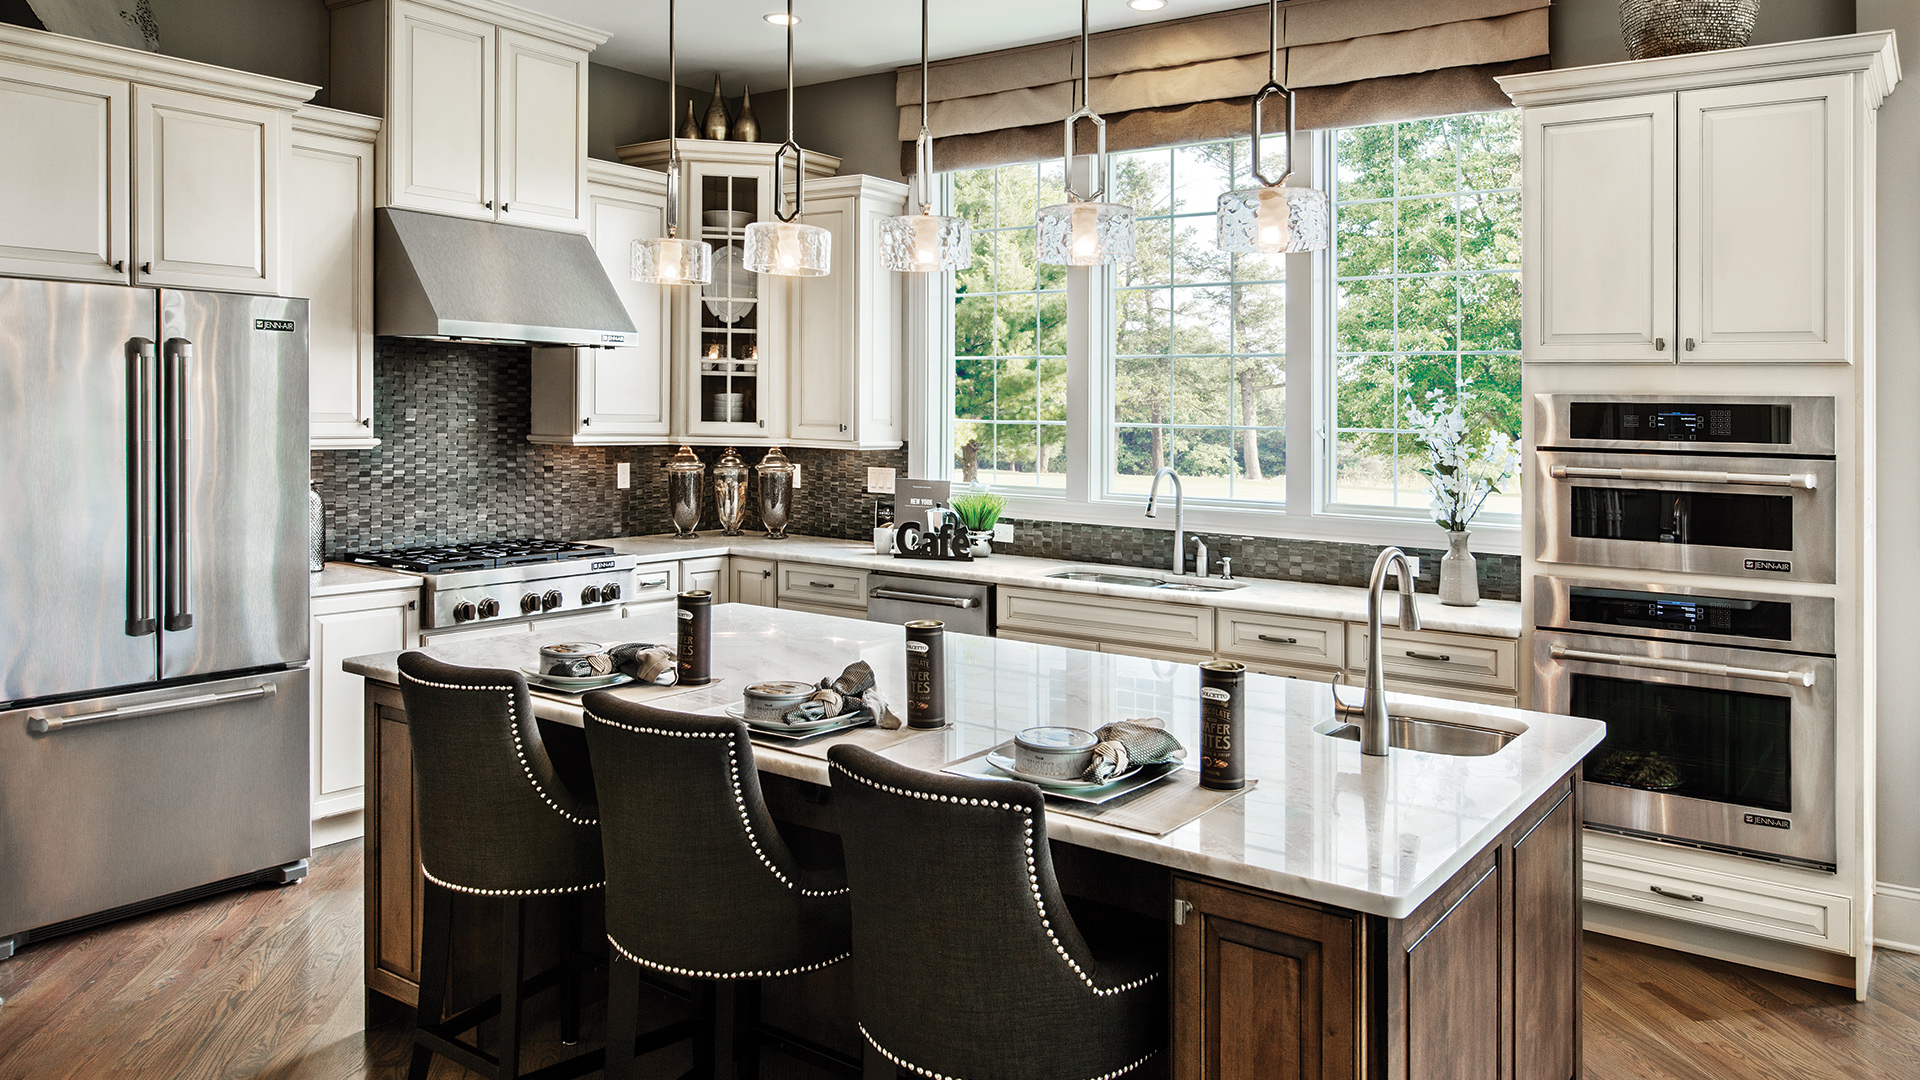 The Pine Ridge kitchen with luxurious finishes and high-end appliances.